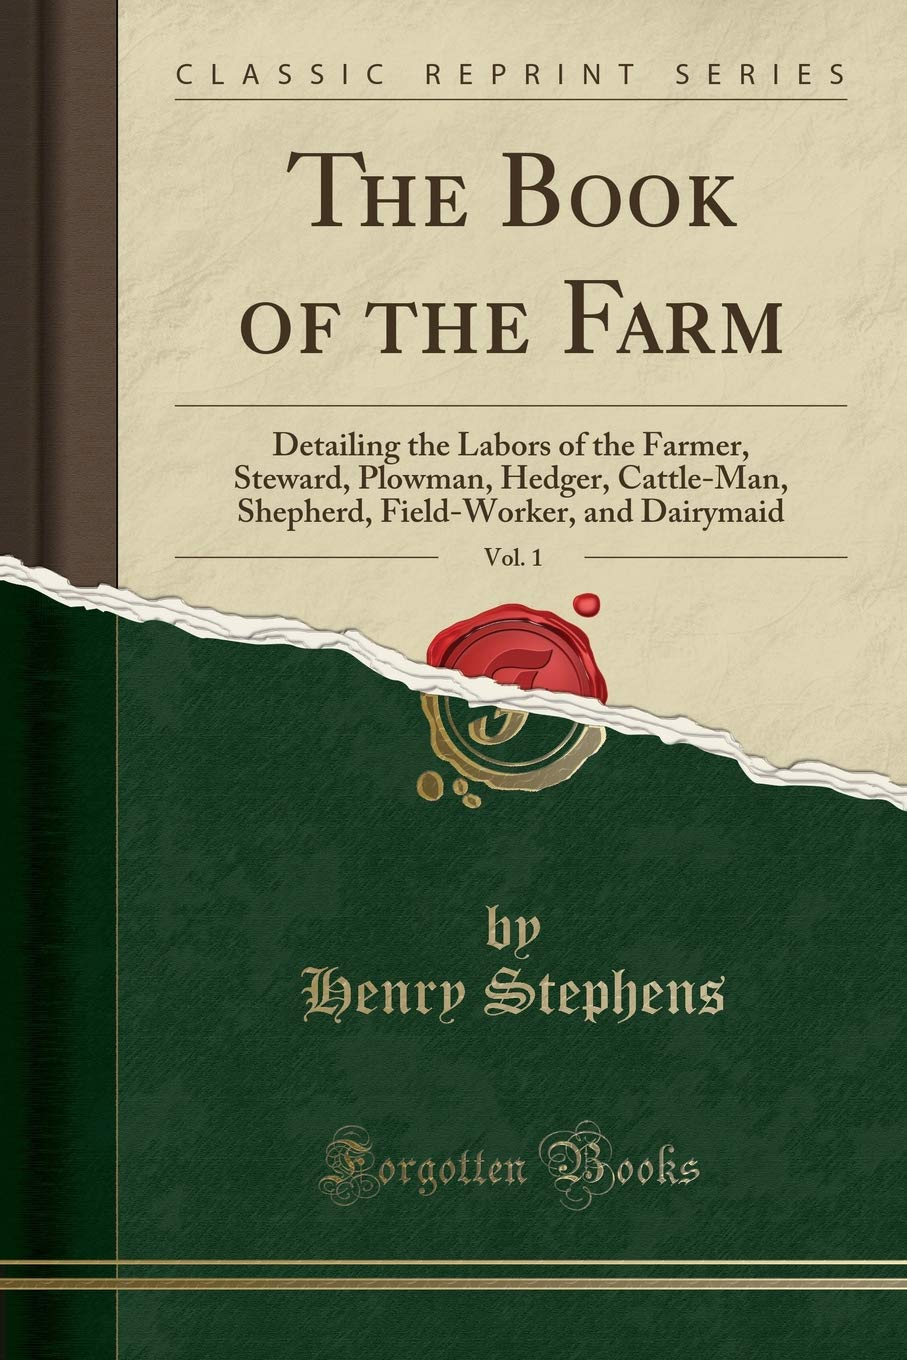 The Book of the Farm, Vol. 1: Detailing the Labors of the Farmer, Steward, Plowman, Hedger, Cattle-Man, Shepherd, Field-Worker, and Dairymaid (Classic Reprint) ebook